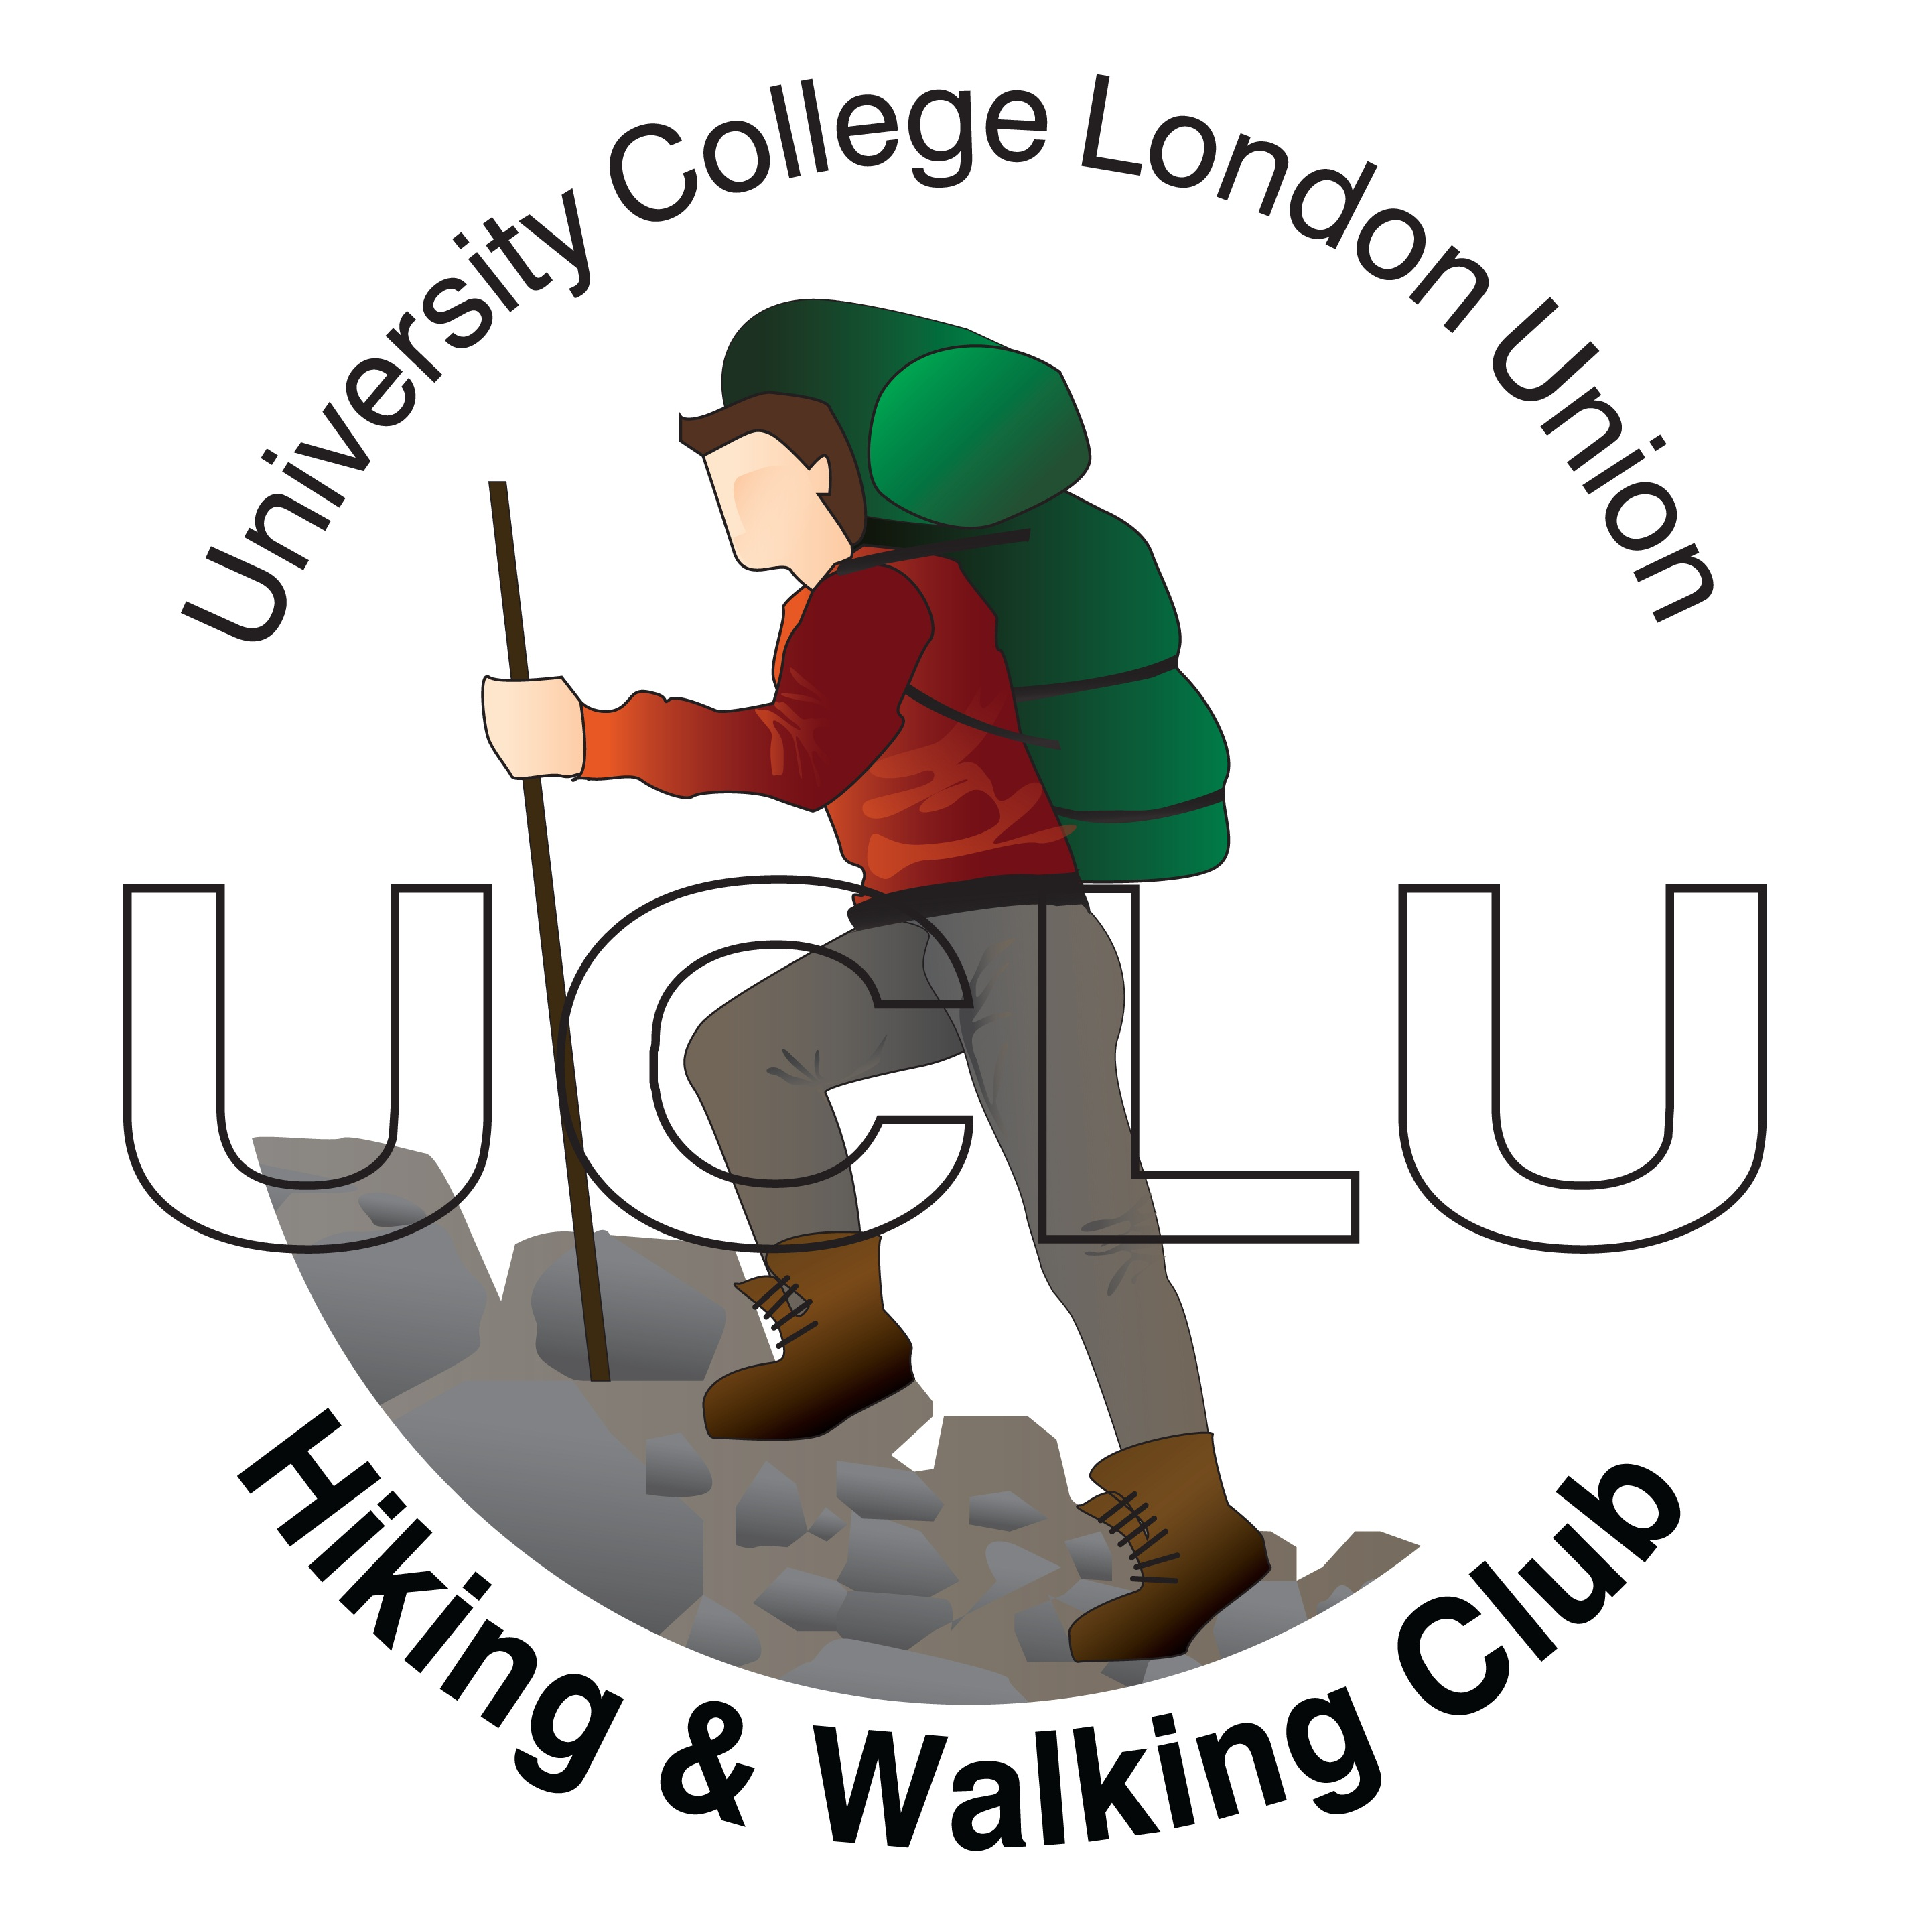 Hiking clipart walking group #6